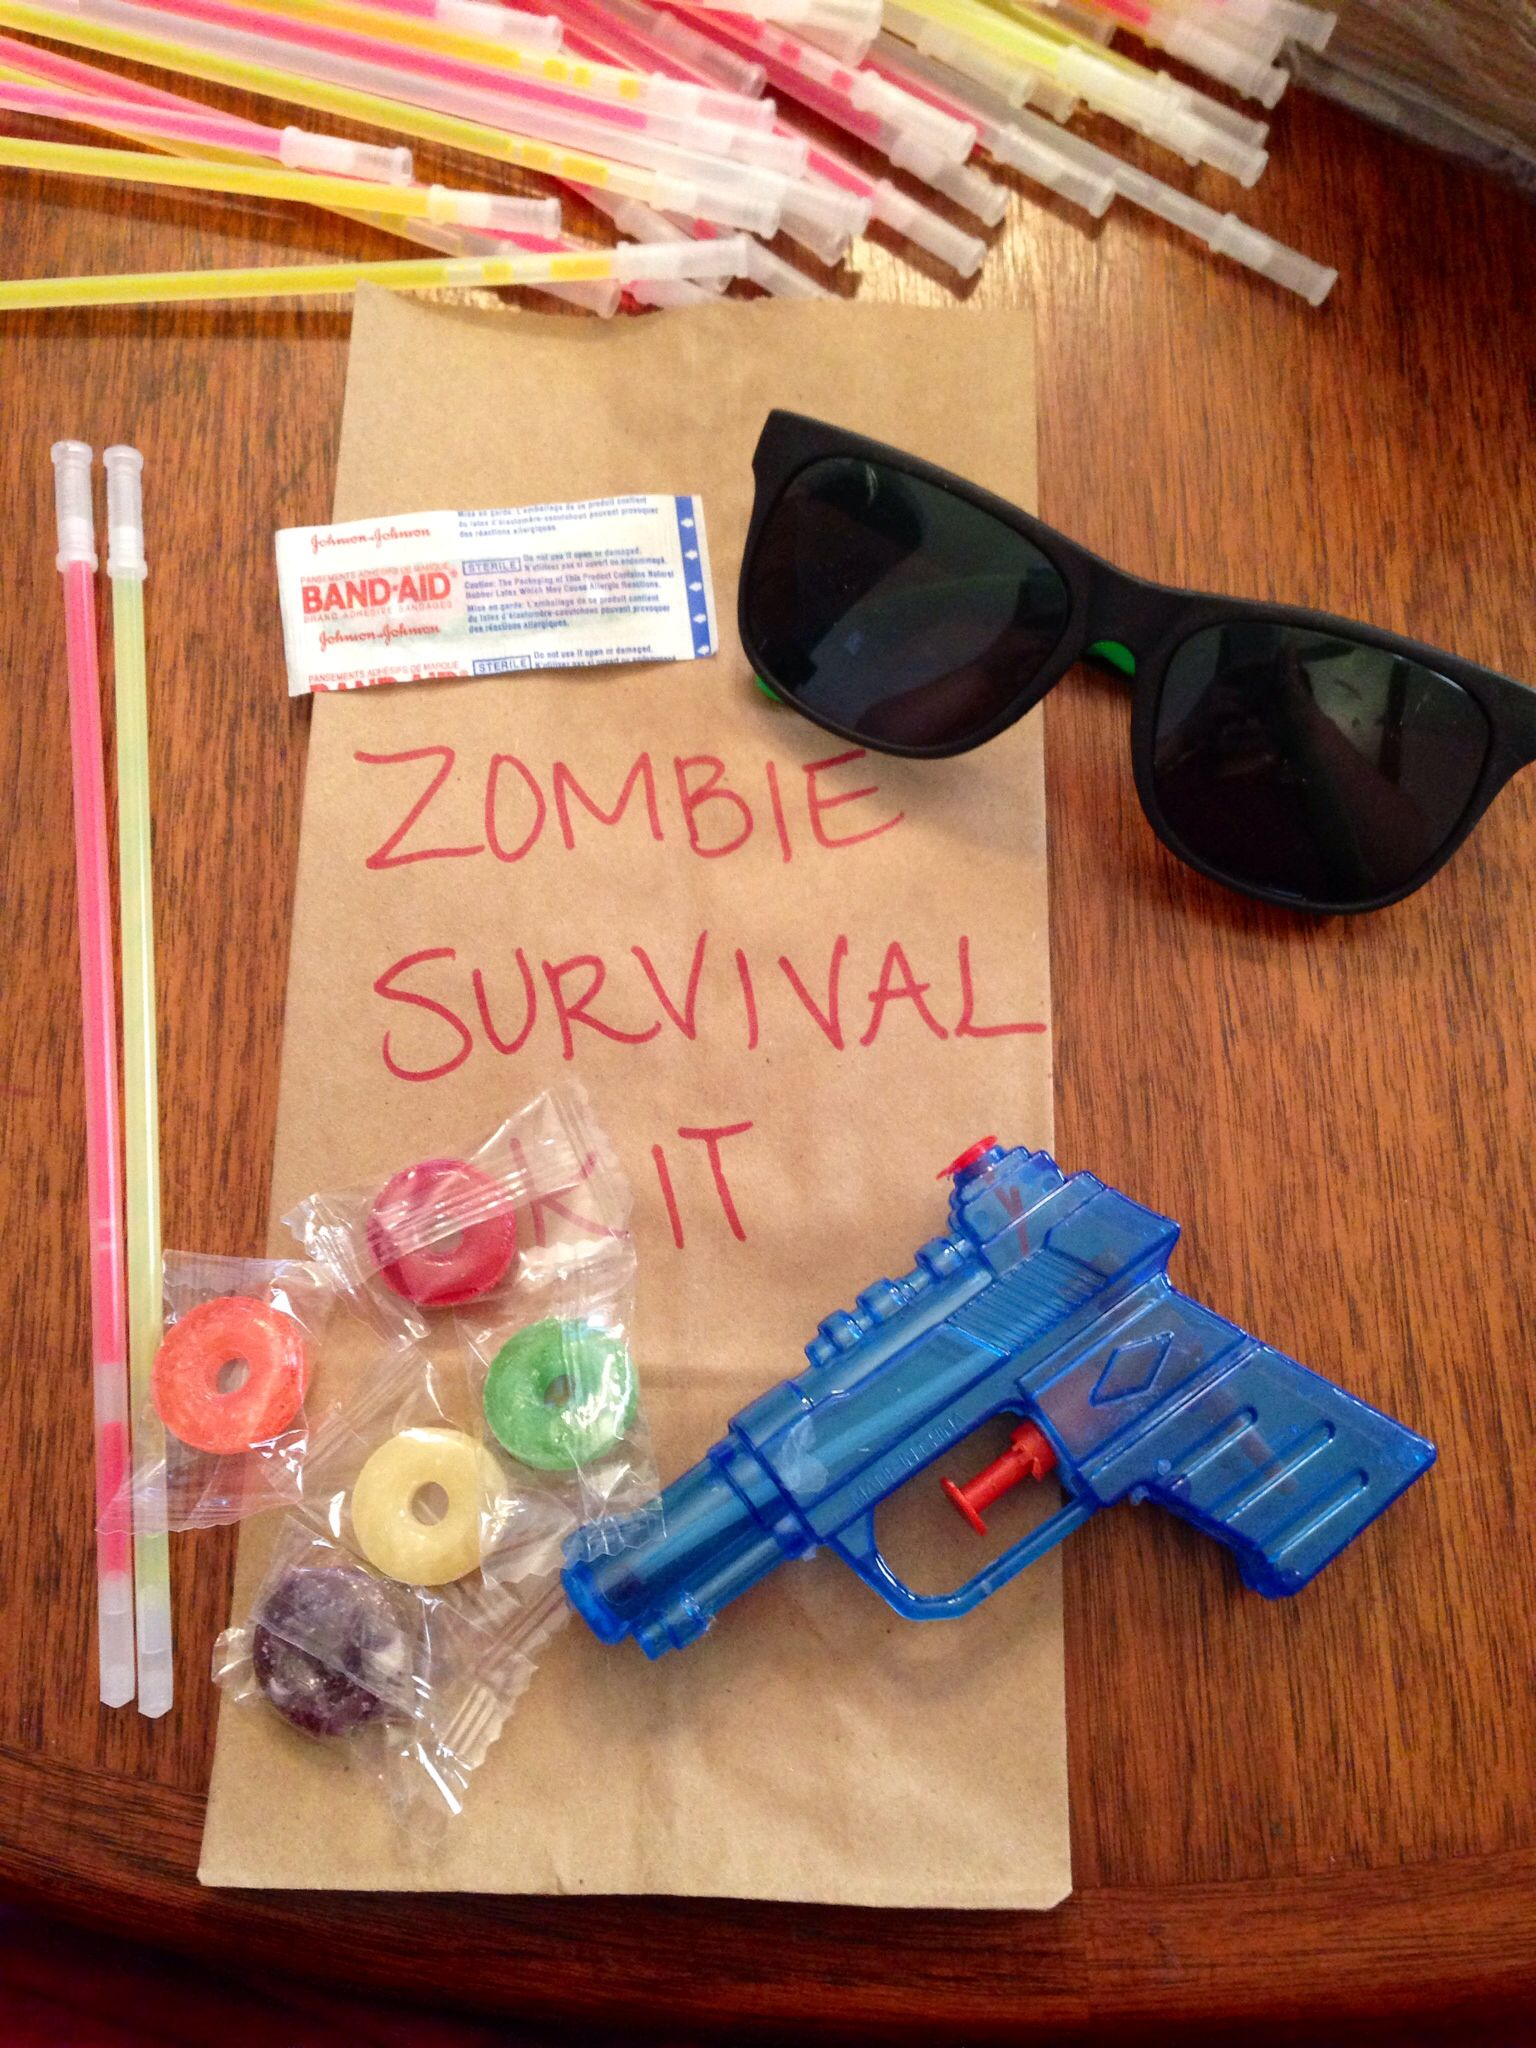 Zombie party ideas zombie party supplies 3 - Our Party Favor Created By Yours Truly Amanda Chino Albuquerque New Mexico Usa The Sunglasses And Squirt Guns Are From Oriental Trading Co Kids Zombie